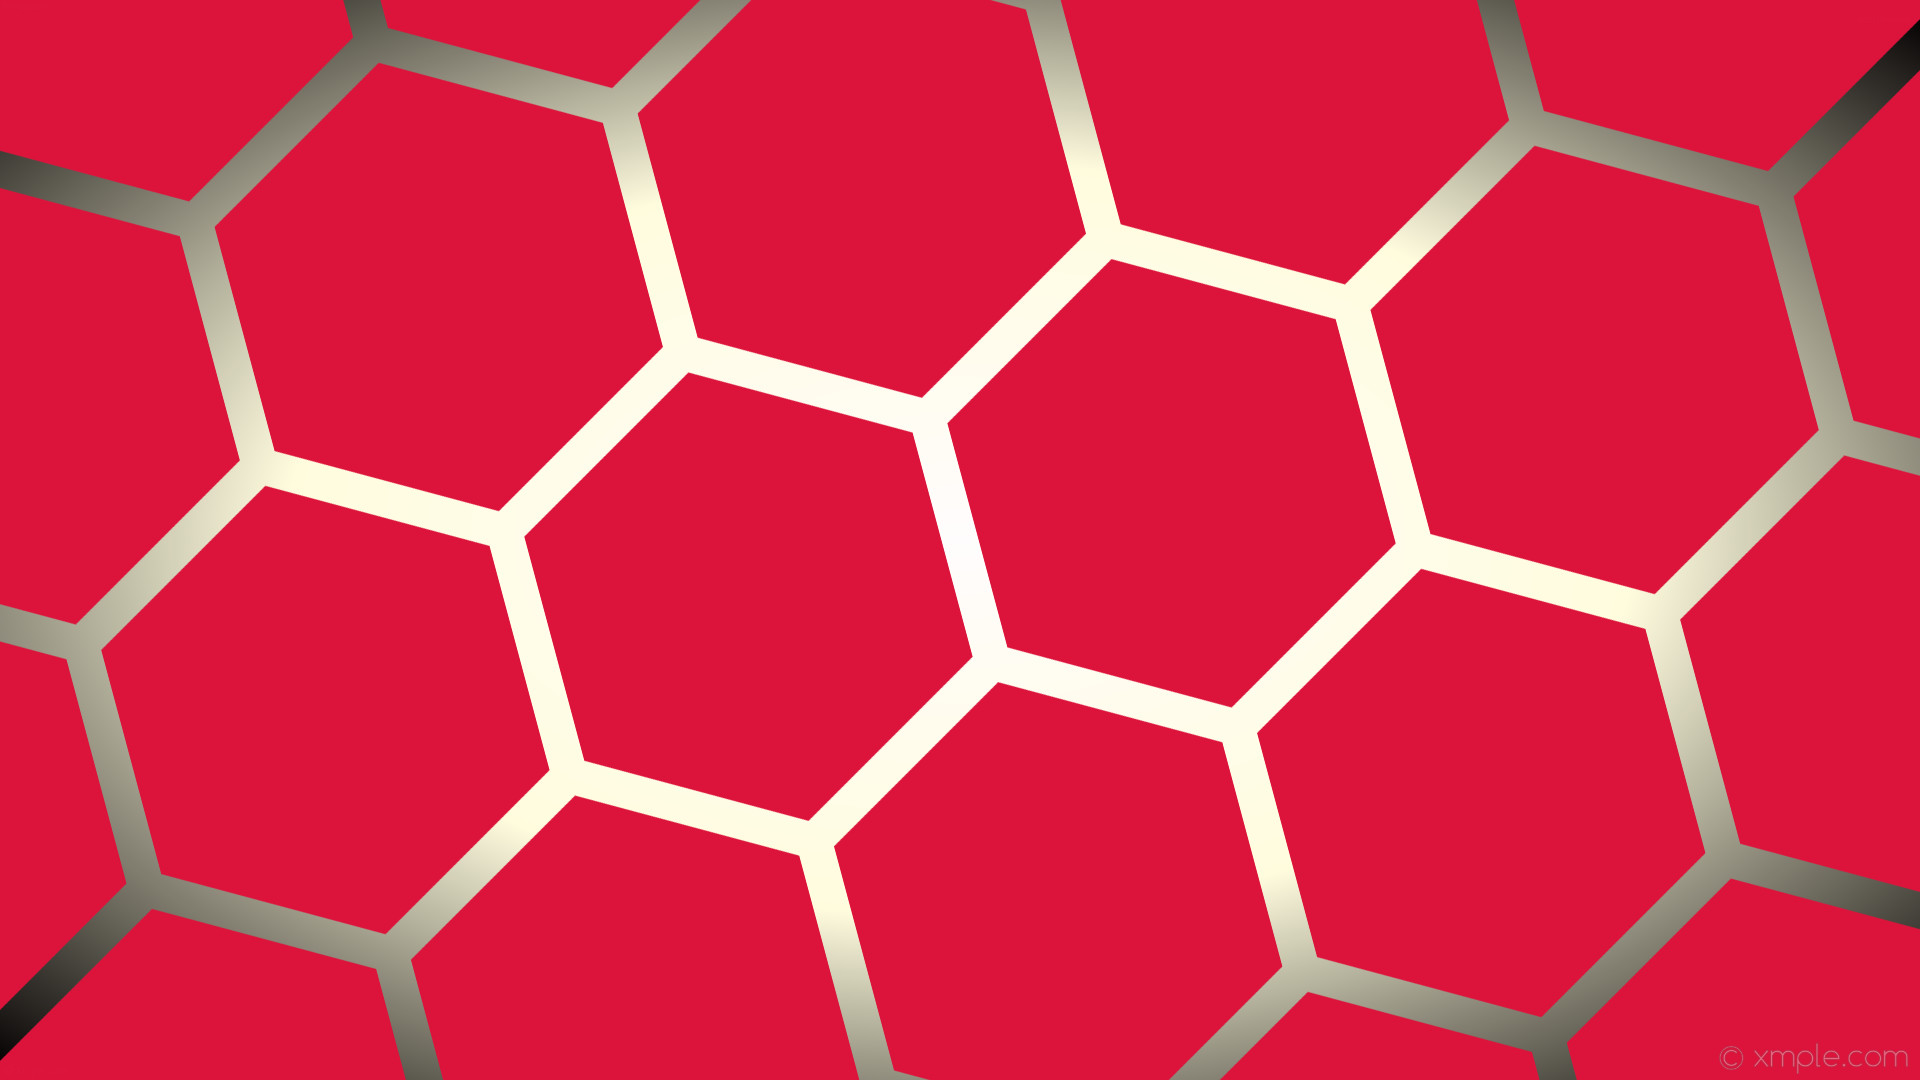 1920x1080 wallpaper red white gradient yellow hexagon glow black crimson light yellow  #dc143c #ffffff #